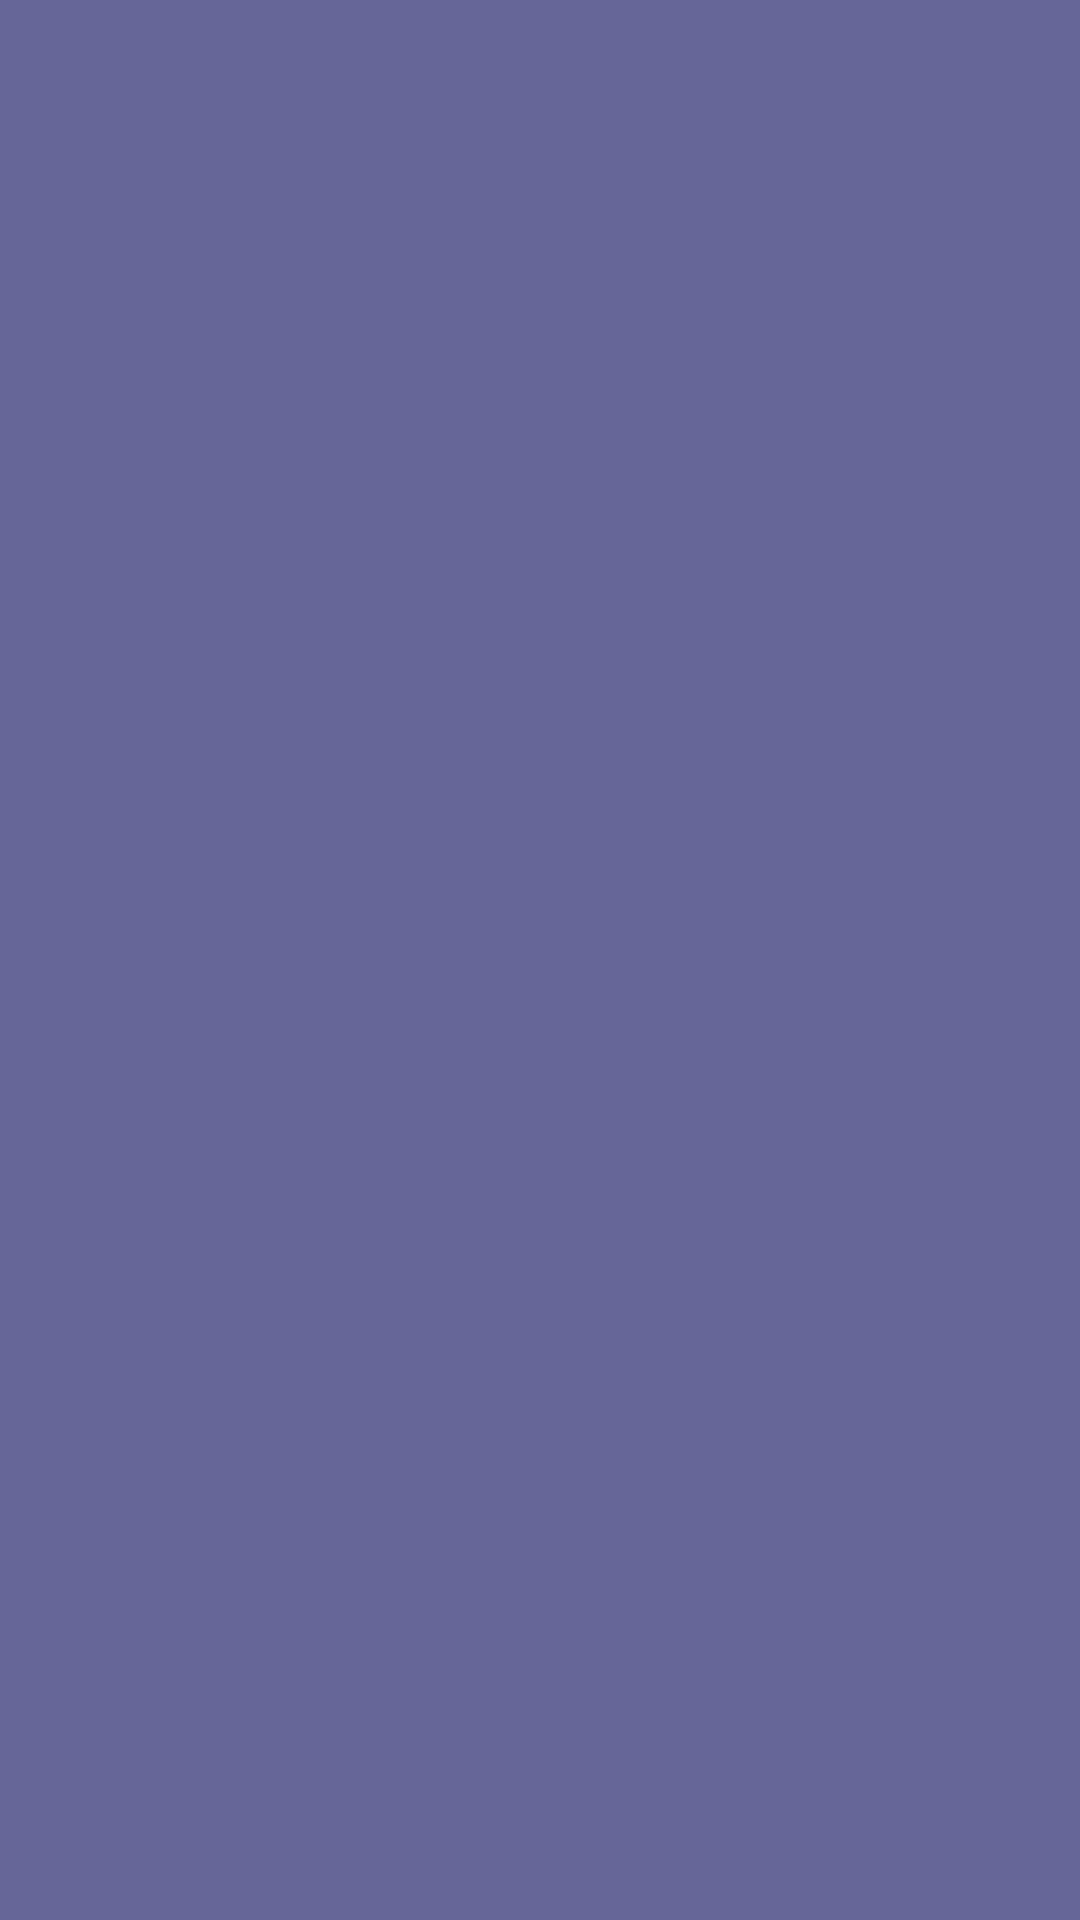 1080x1920 Dark Blue-gray Solid Color Background